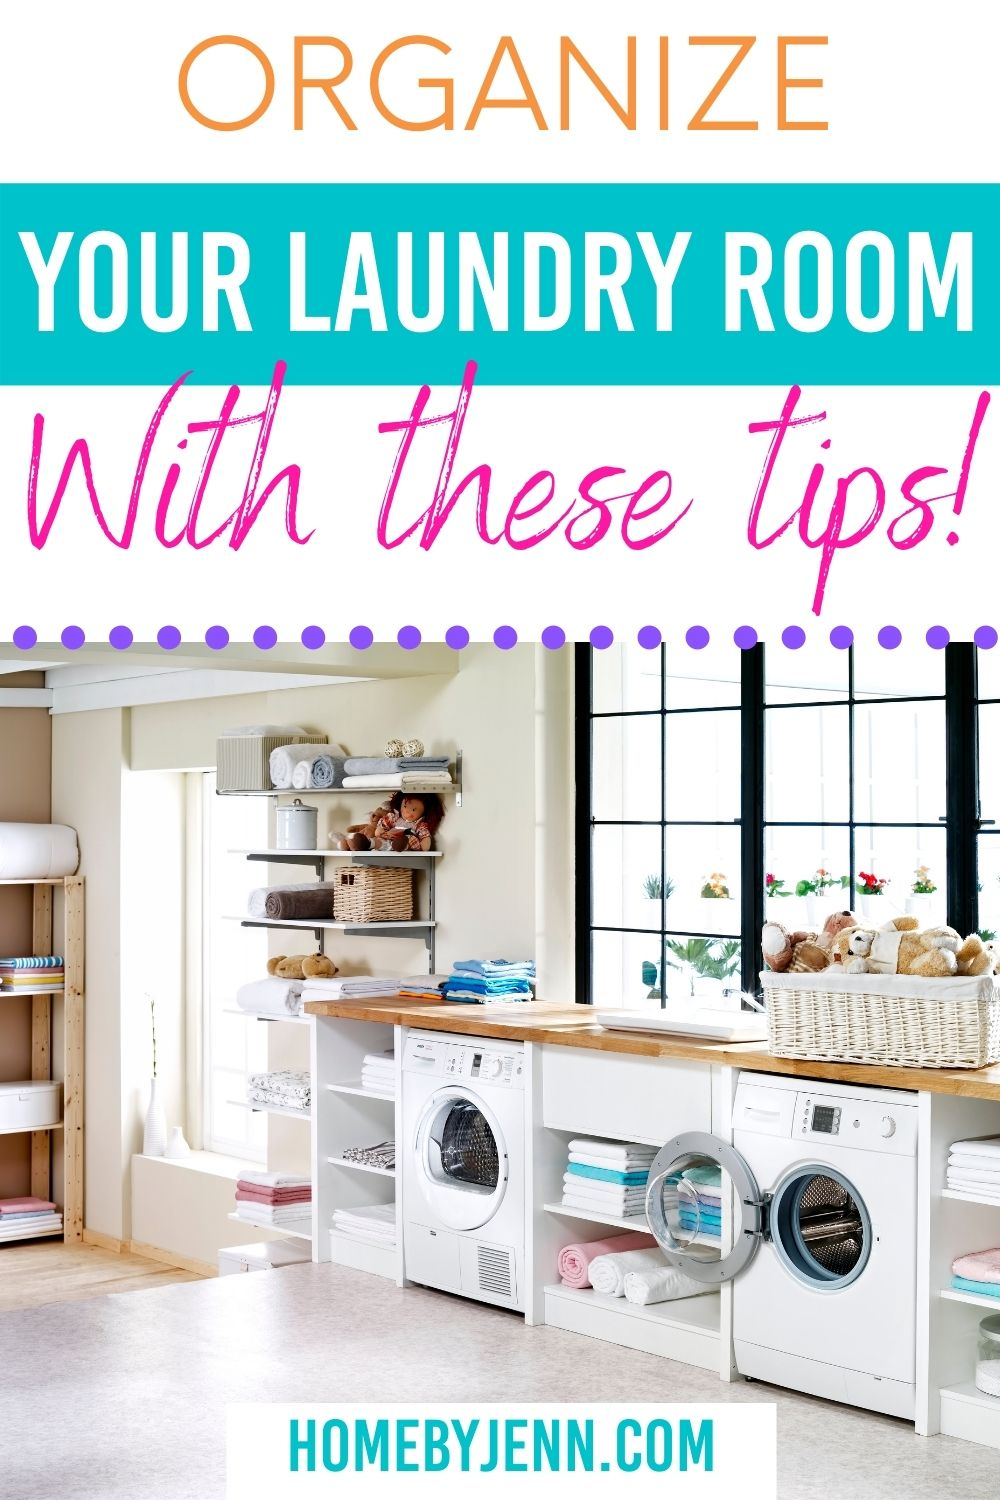 Are you ready to organize your laundry room? Is your laundry room a mess? Do you hate doing laundry because you hate going into that room? Why not take the time to make your laundry room into a space you love? Let's start by organizing your laundry room with these amazing storage essentials. via @homebyjenn